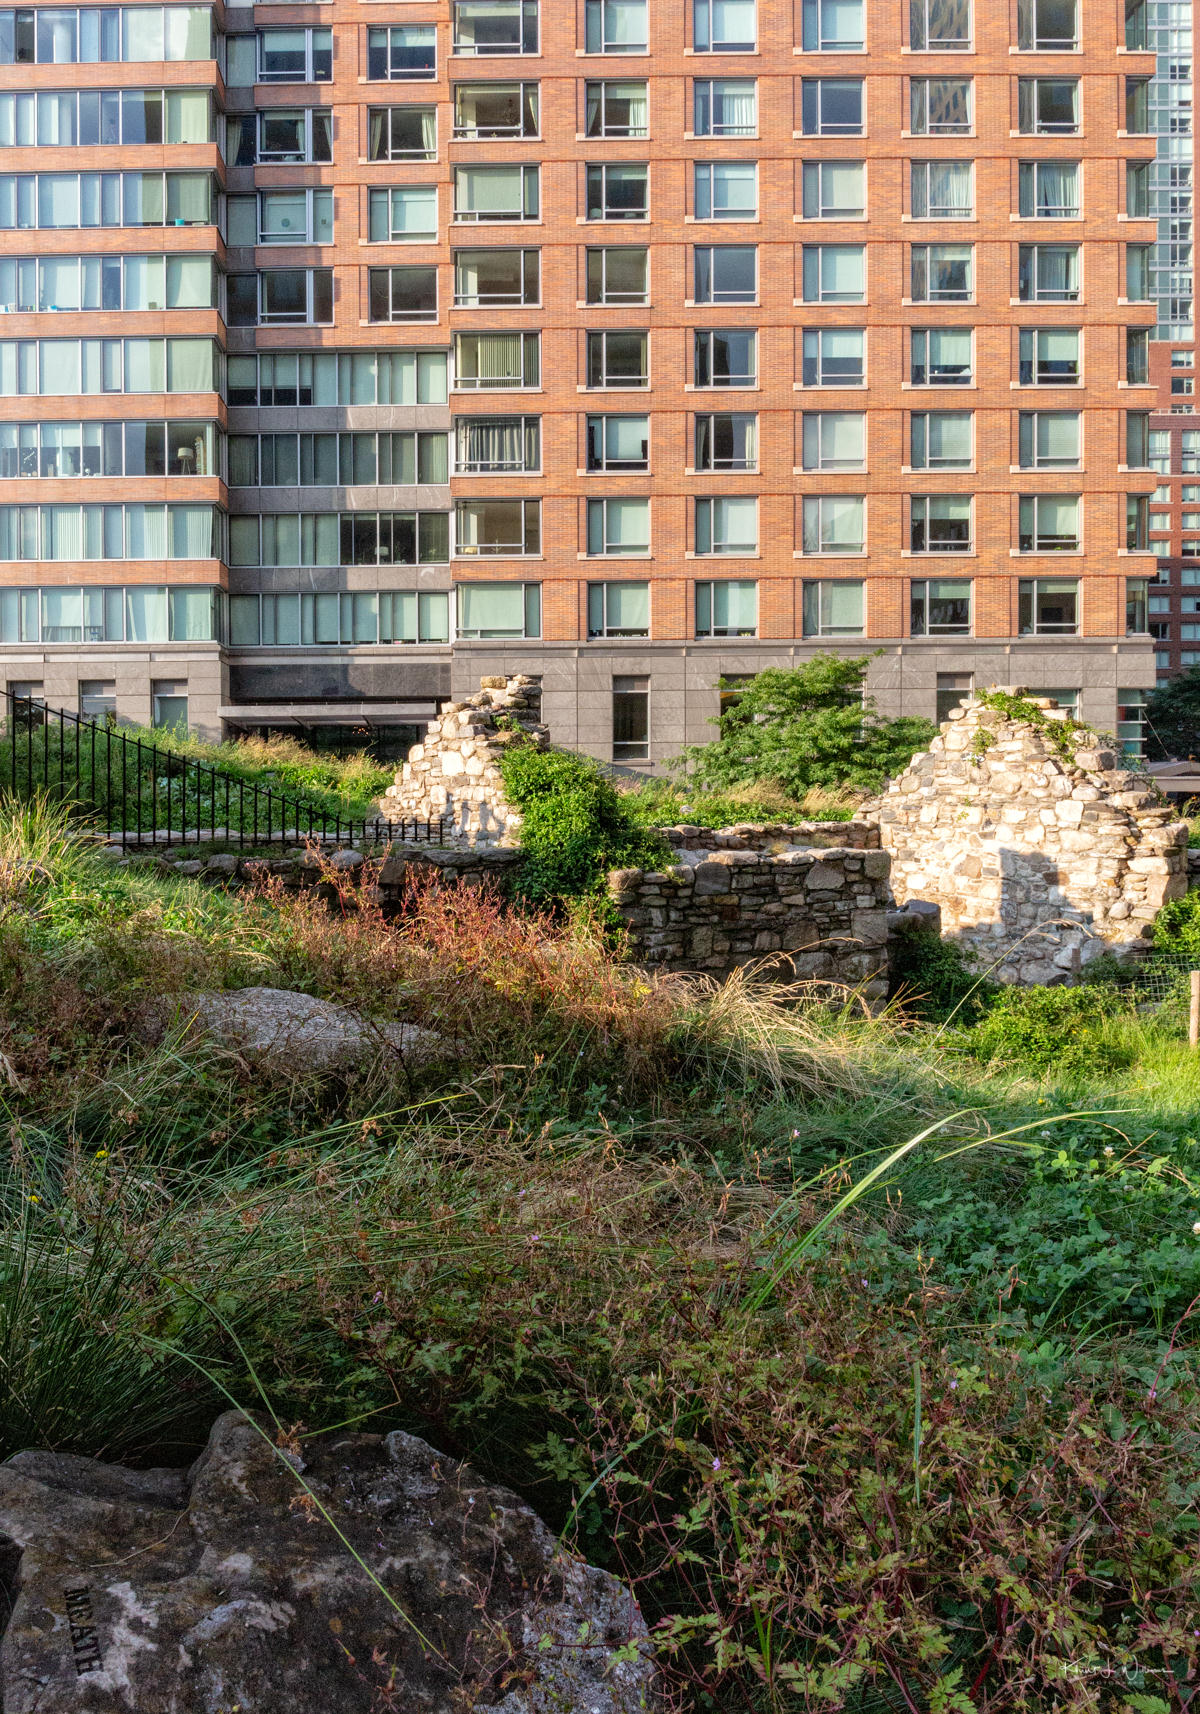 By land and by water; a field trip to the lower Manhattan cityscape